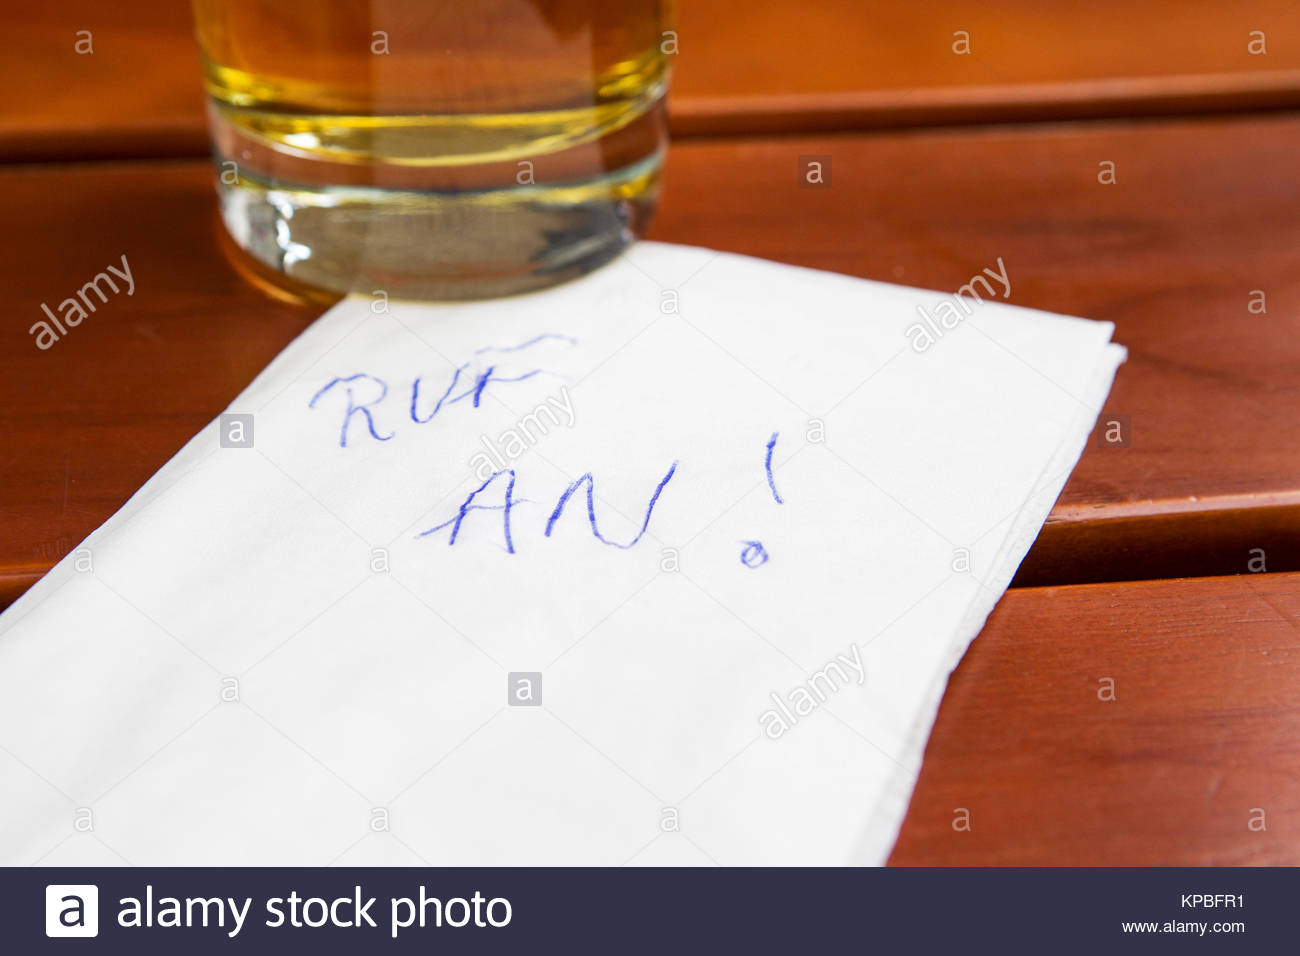 note with german words 'ruf an' (call me) - Stock Image